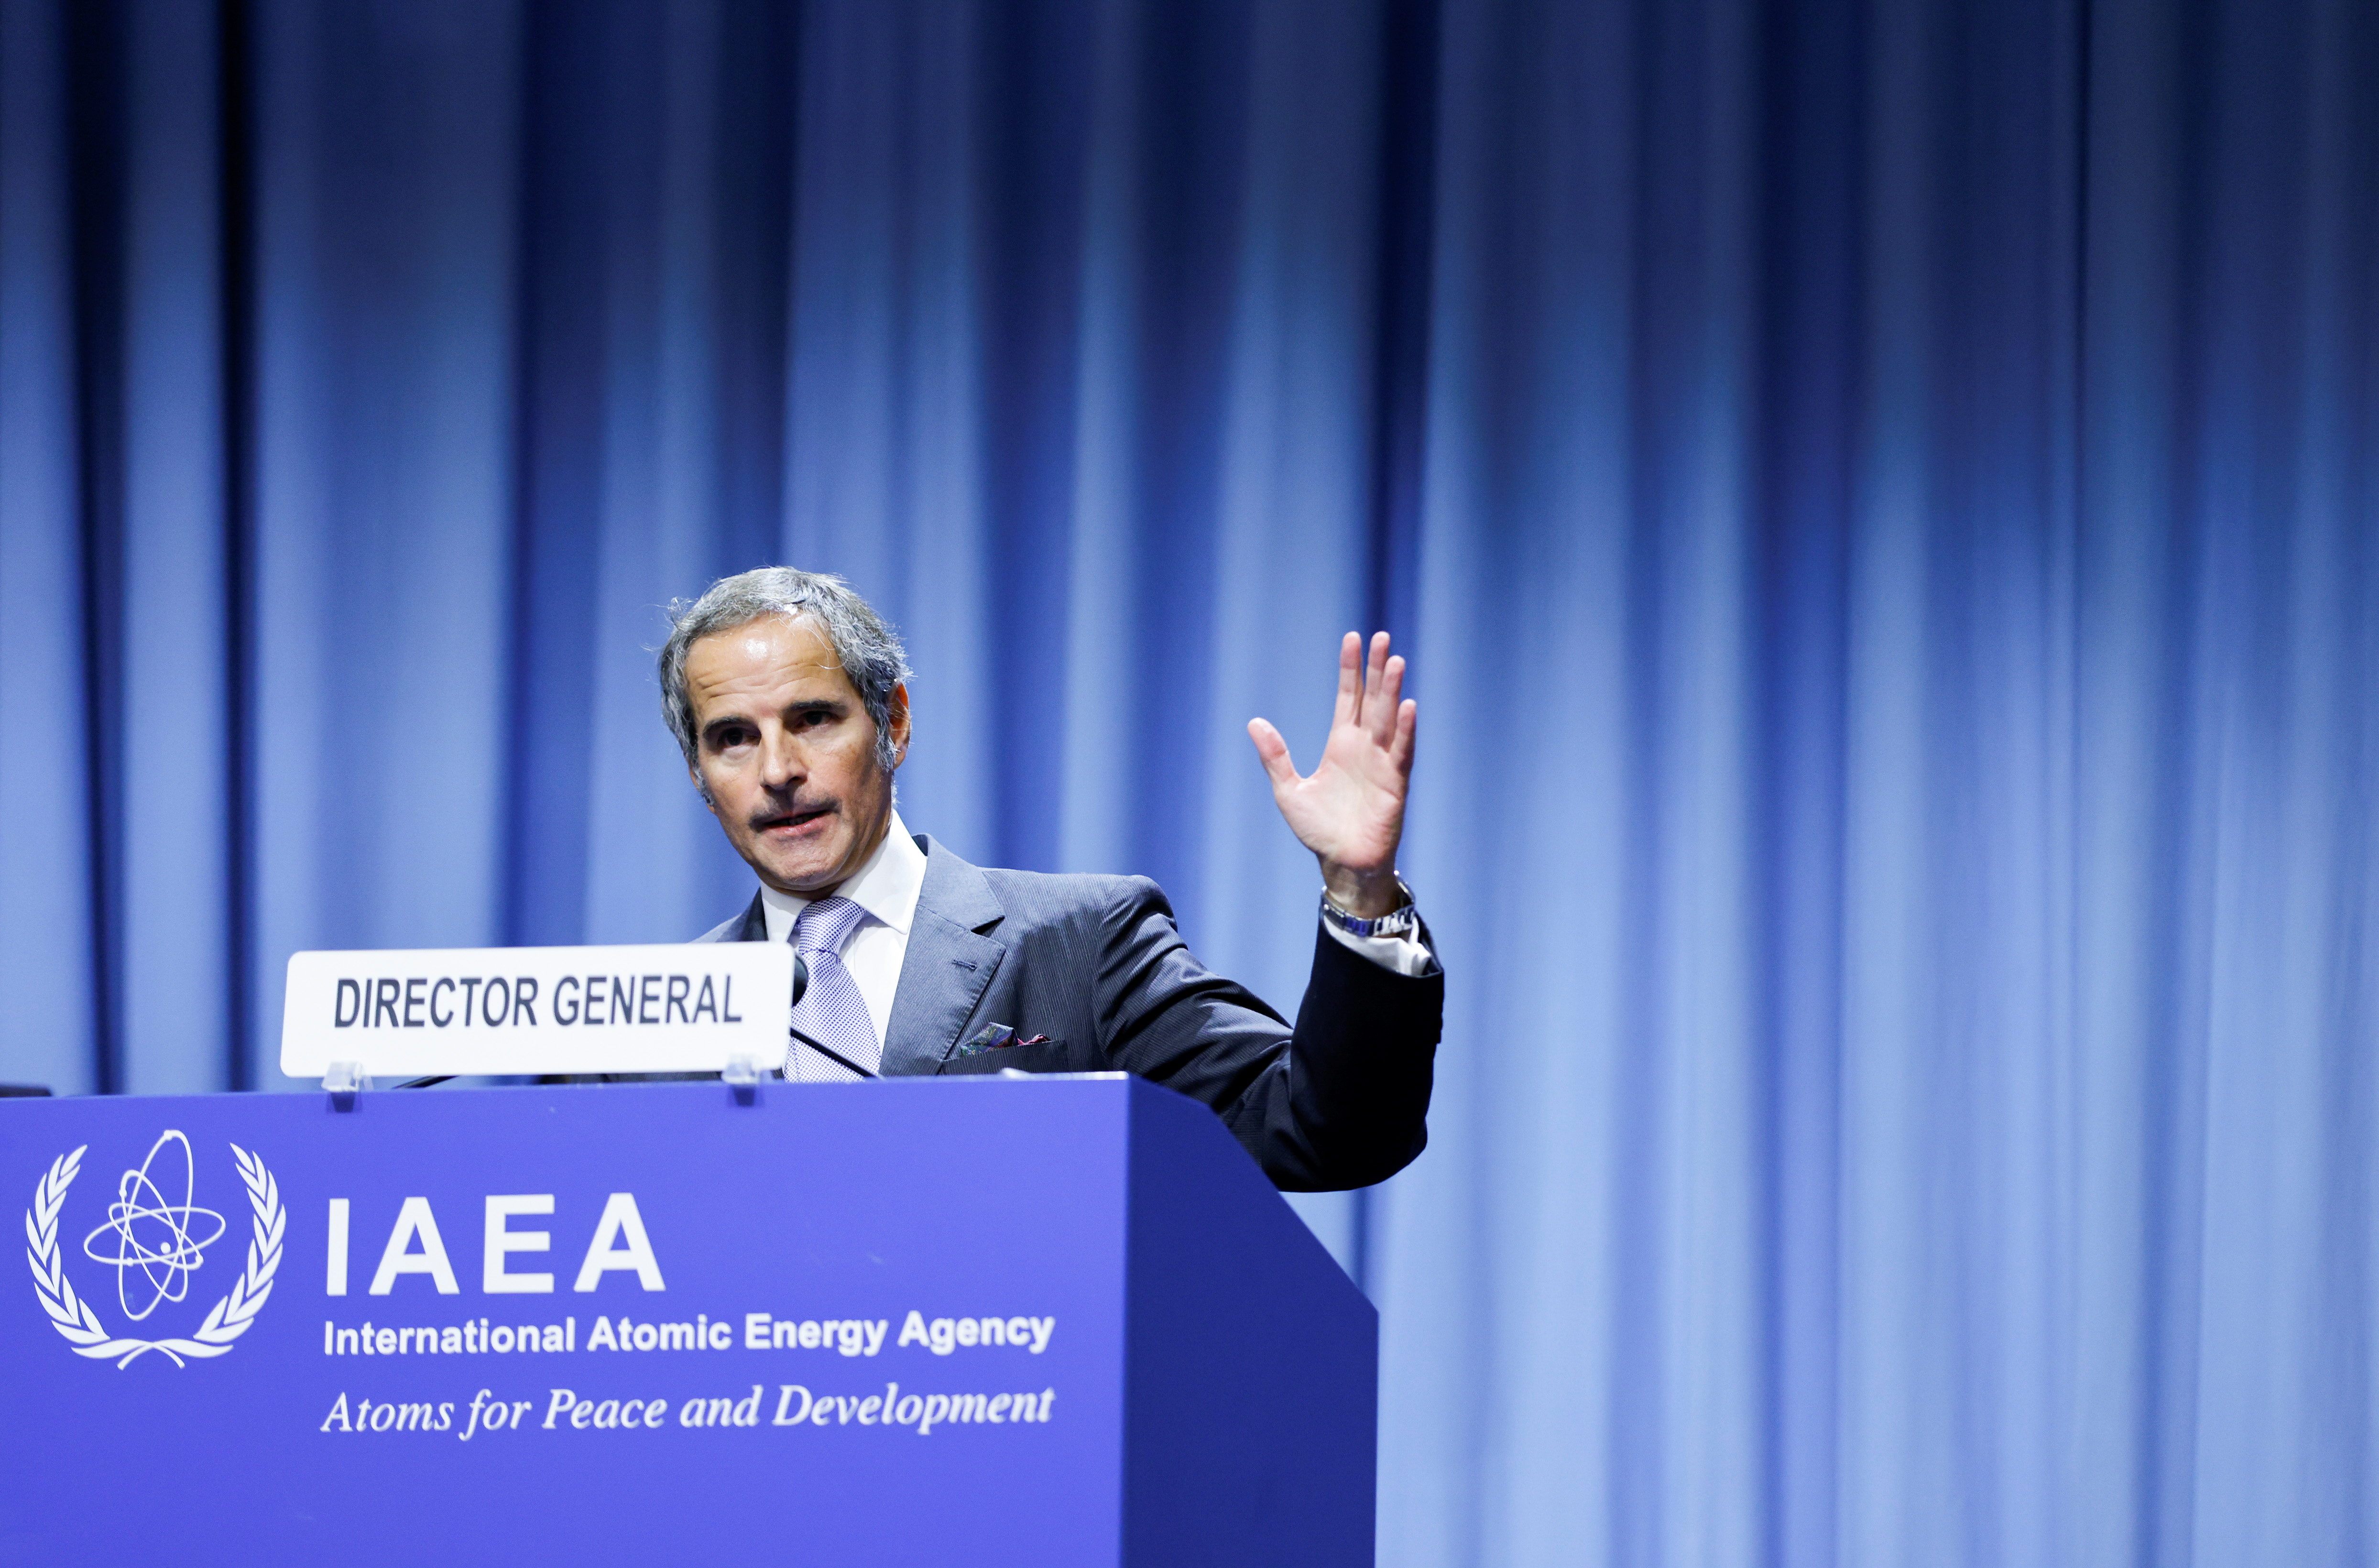 International Atomic Energy Agency (IAEA) Director General Rafael Grossi delivers his speech at the opening of the IAEA General Conference at their headquarters in Vienna, Austria, September 20, 2021. REUTERS/Leonhard Foeger